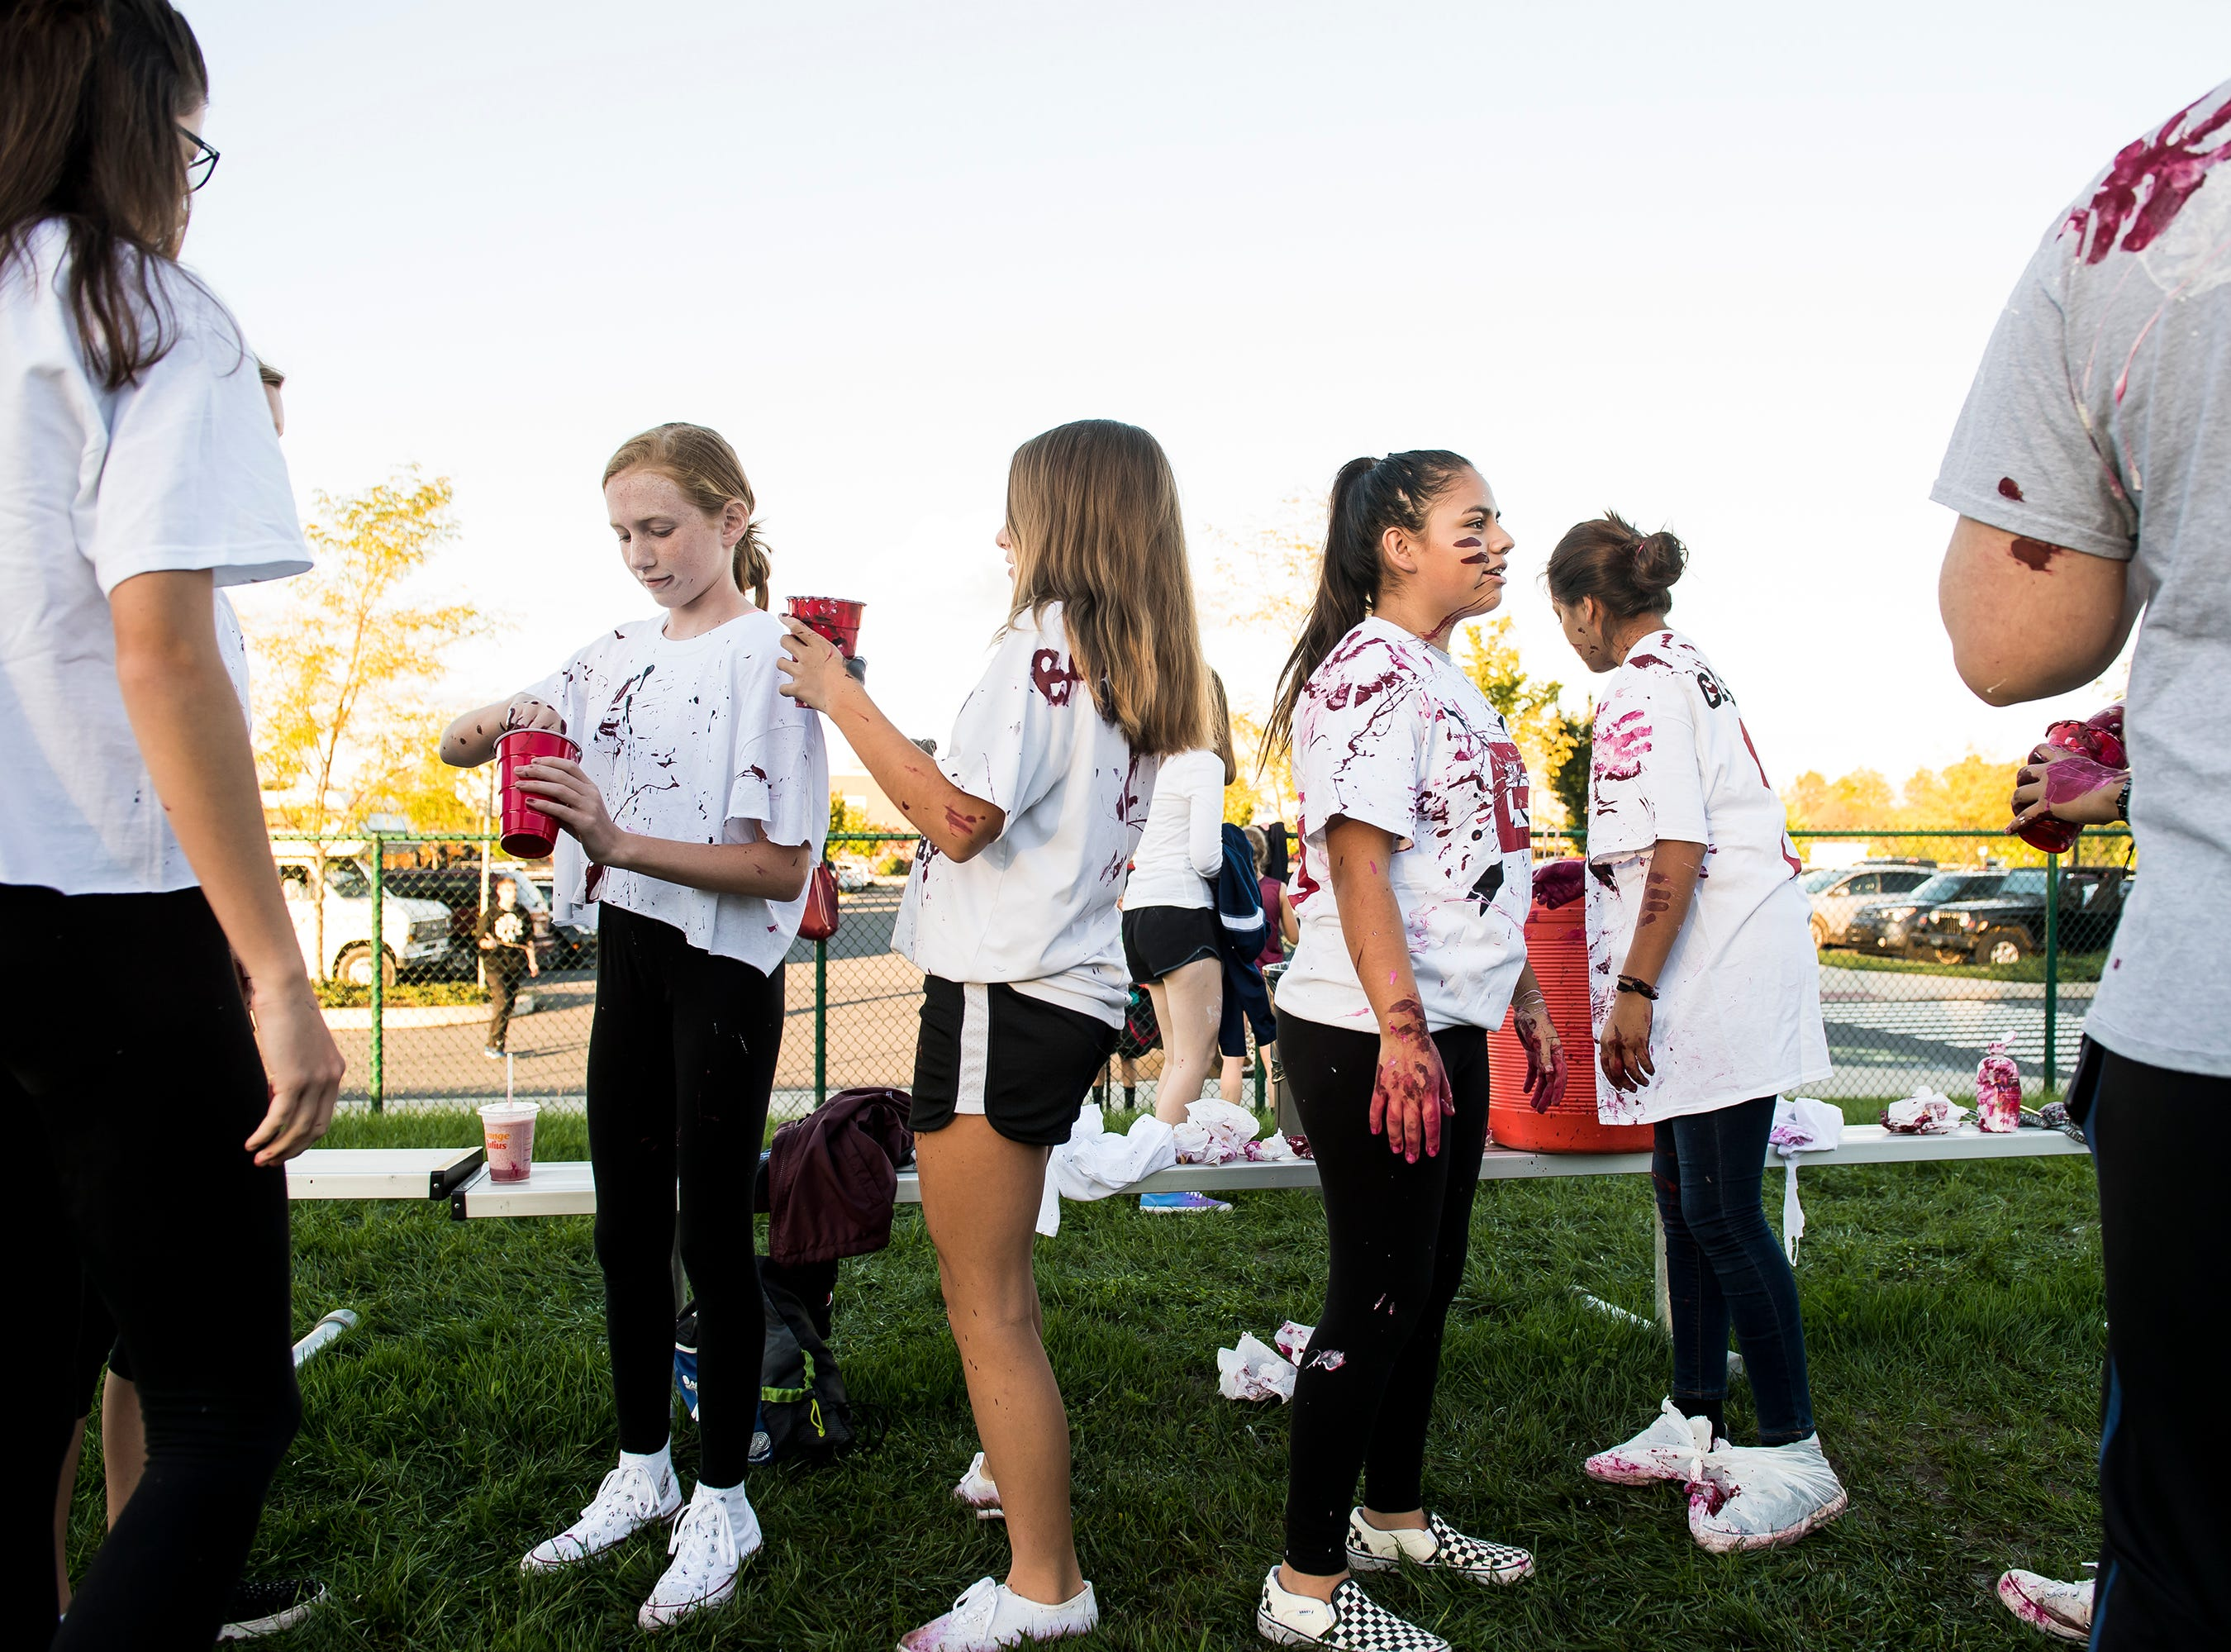 """Gettysburg students cover each other in paint during a """"splatter-fest"""" prior to the football game against Eastern York on Friday, September 28, 2018. The fest helped raise money for the school's Mini-THON."""